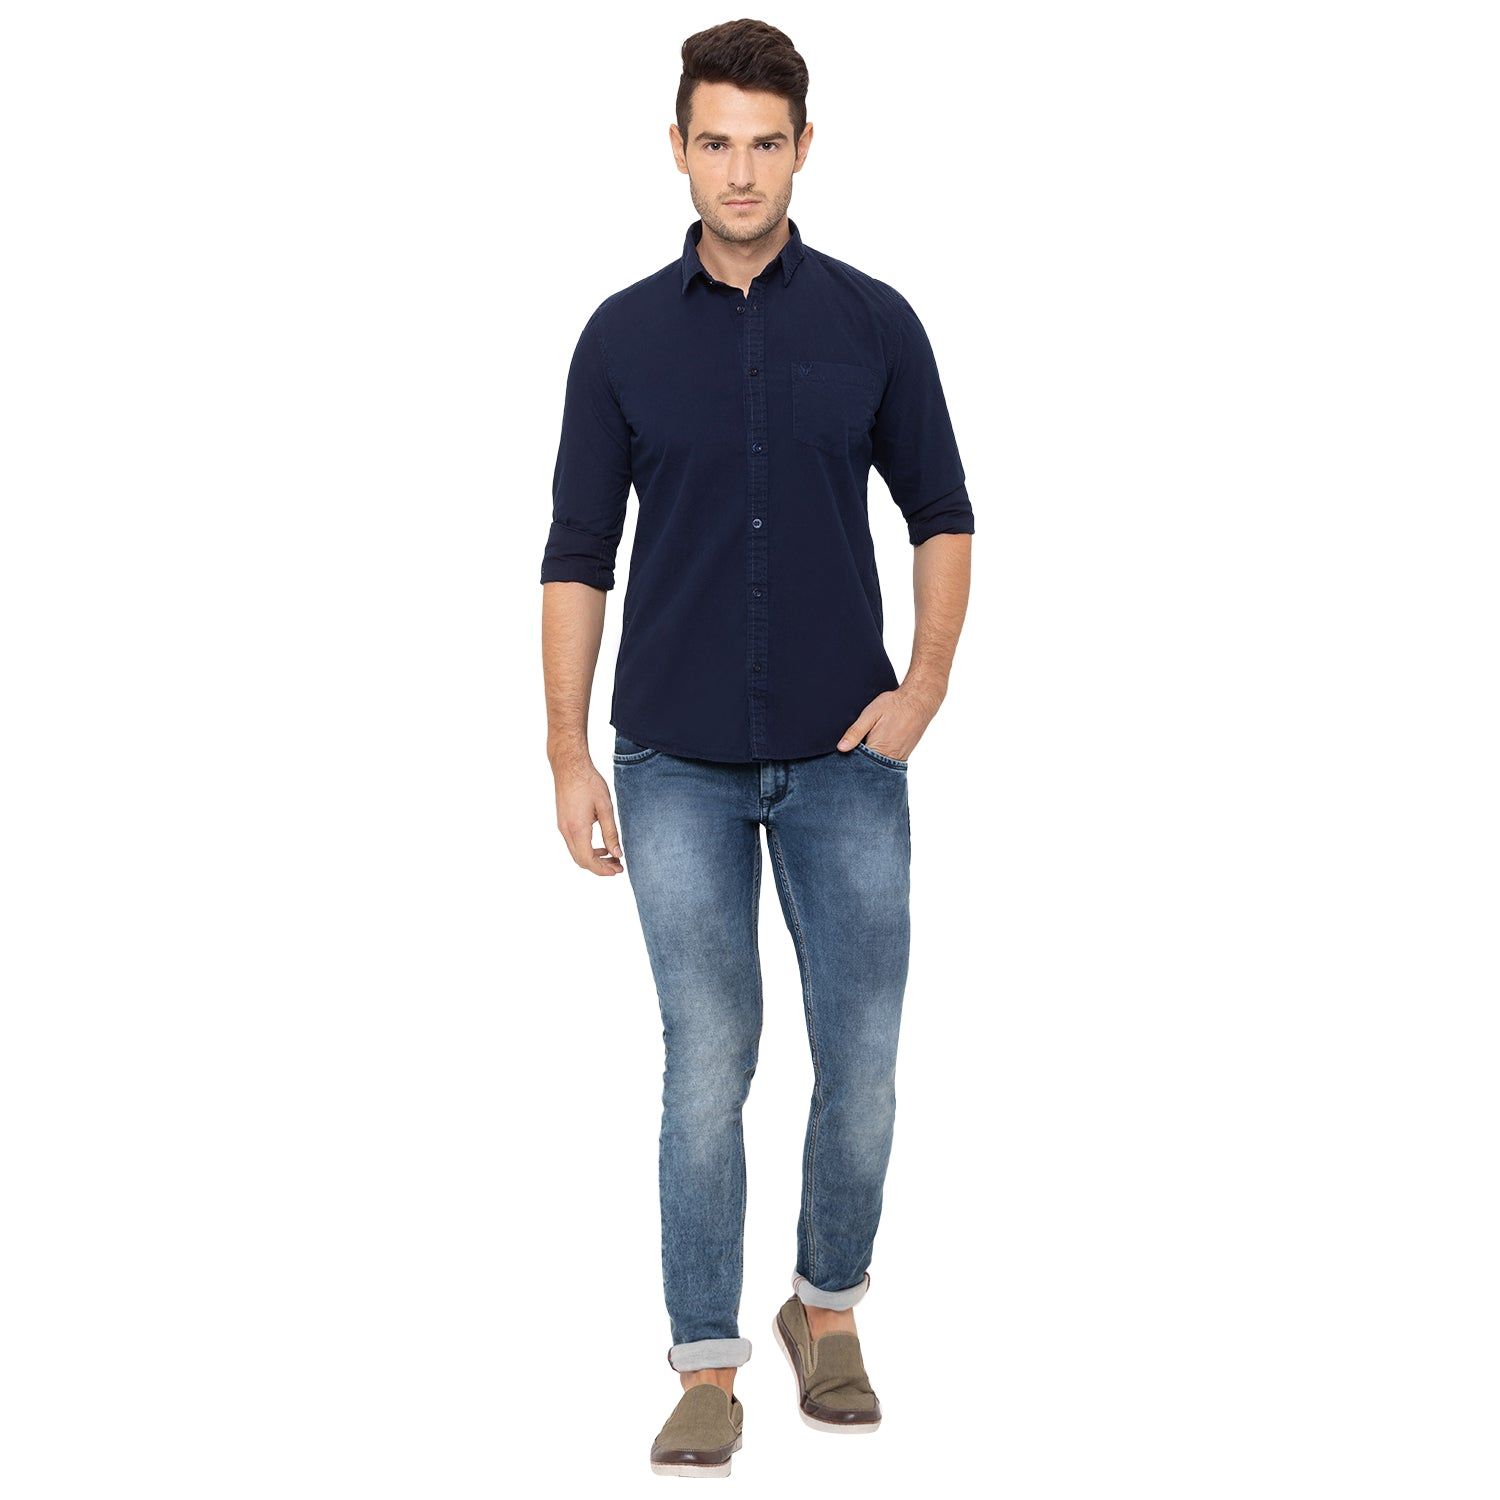 Globus Navy Blue Solid Shirt-2